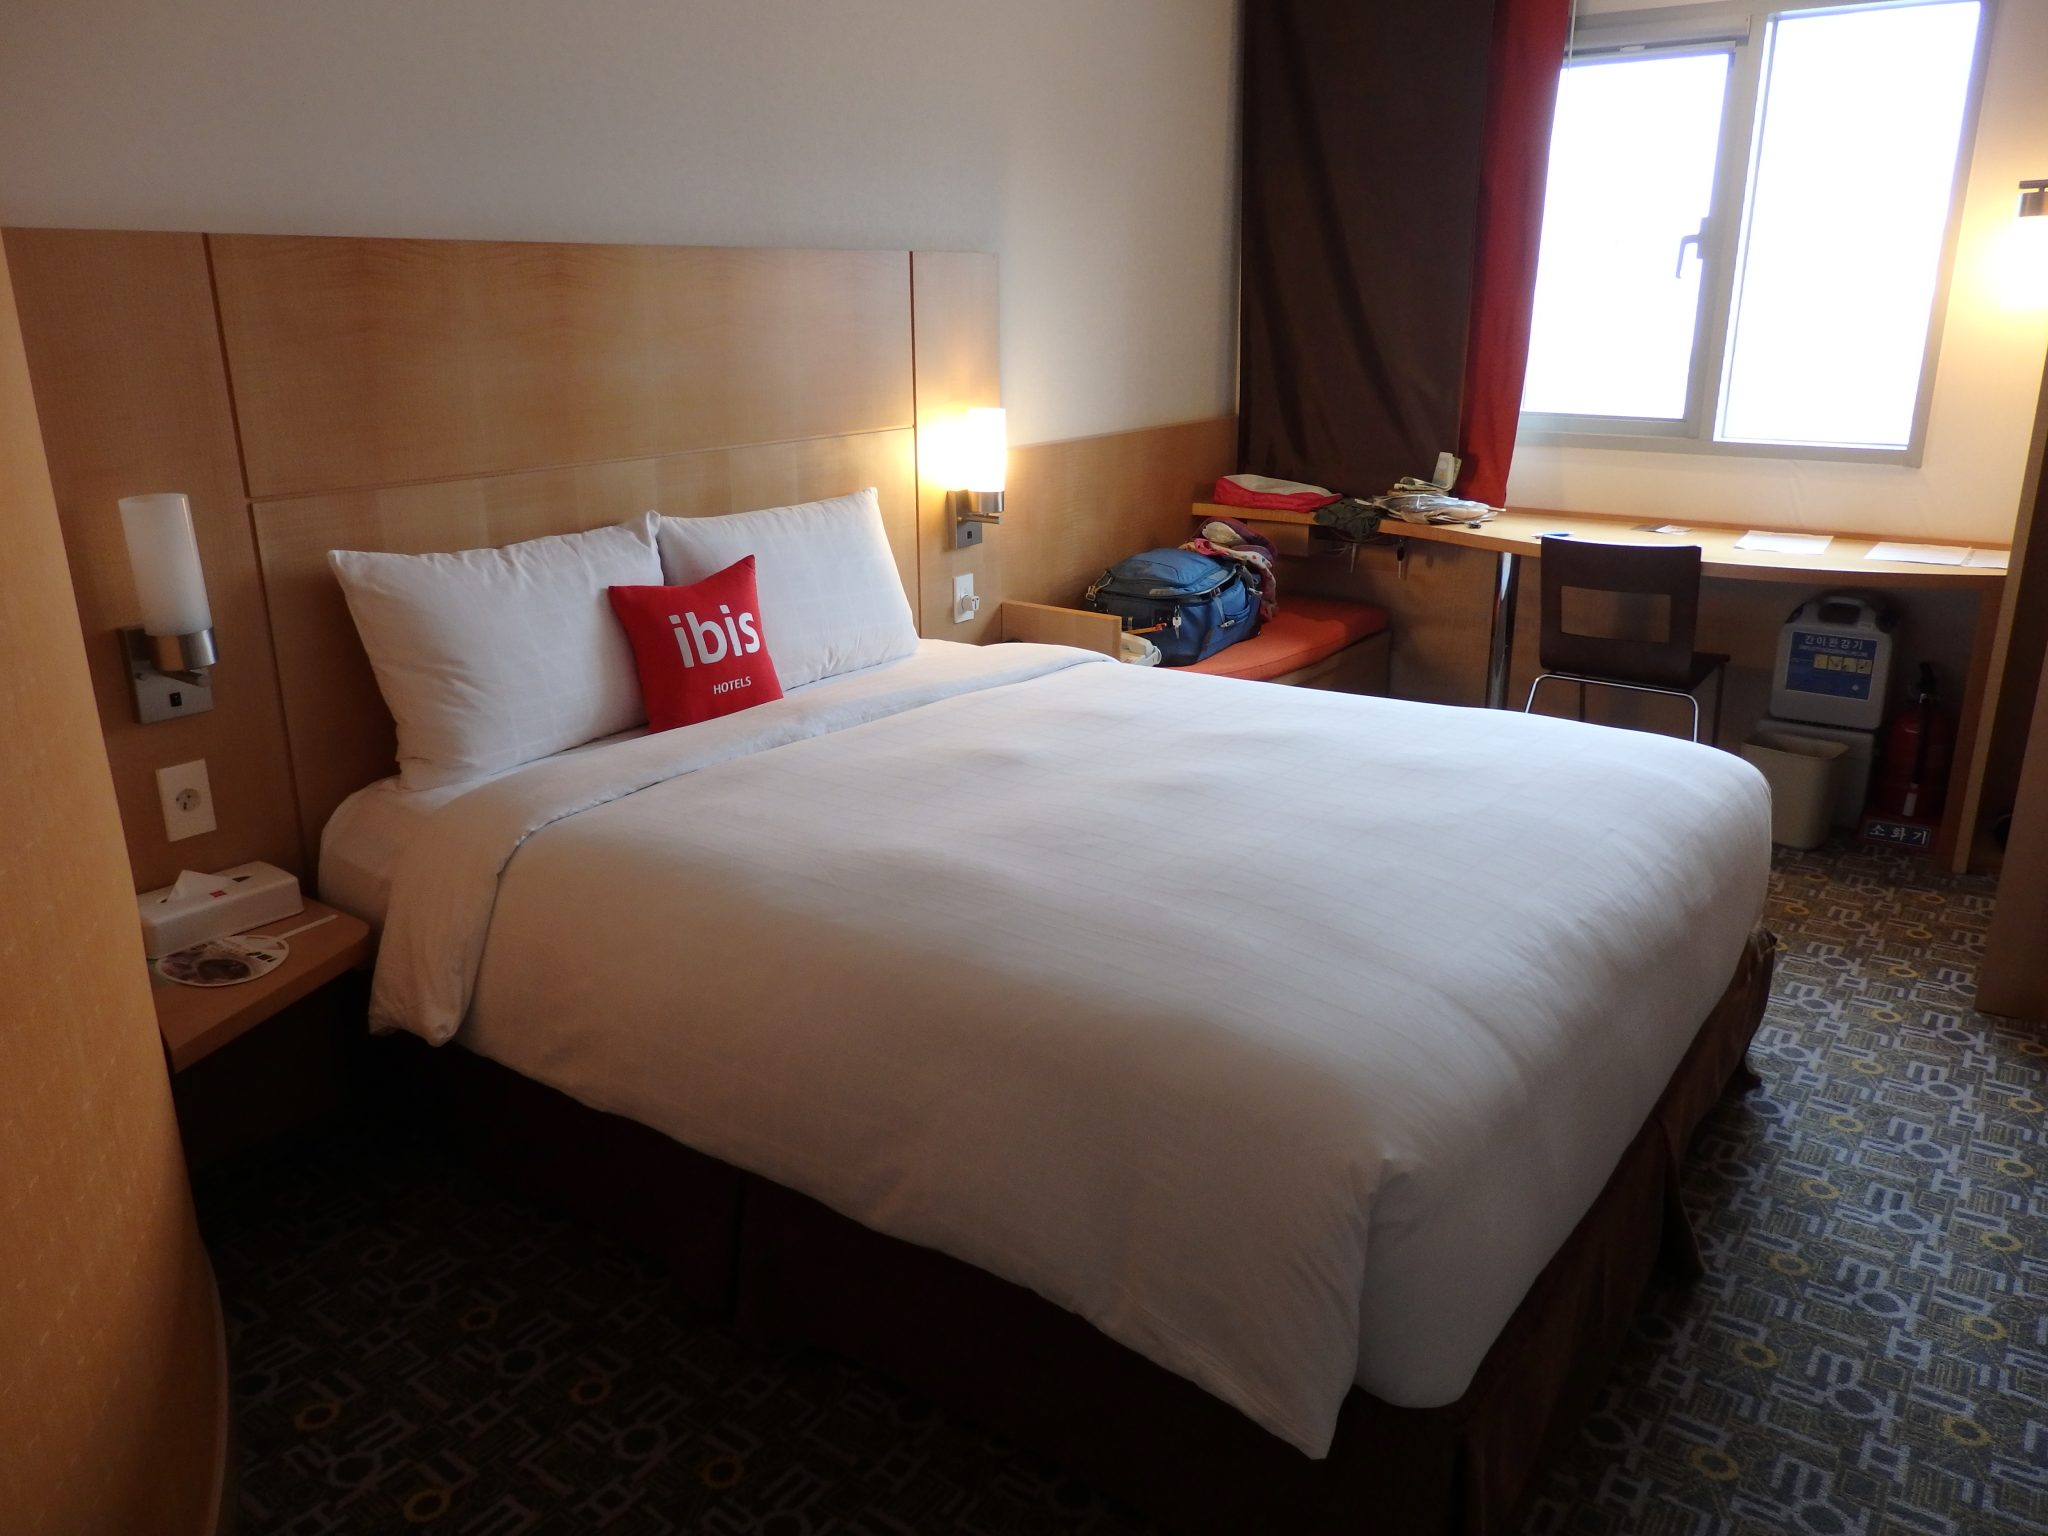 room at the Ibis Hotel